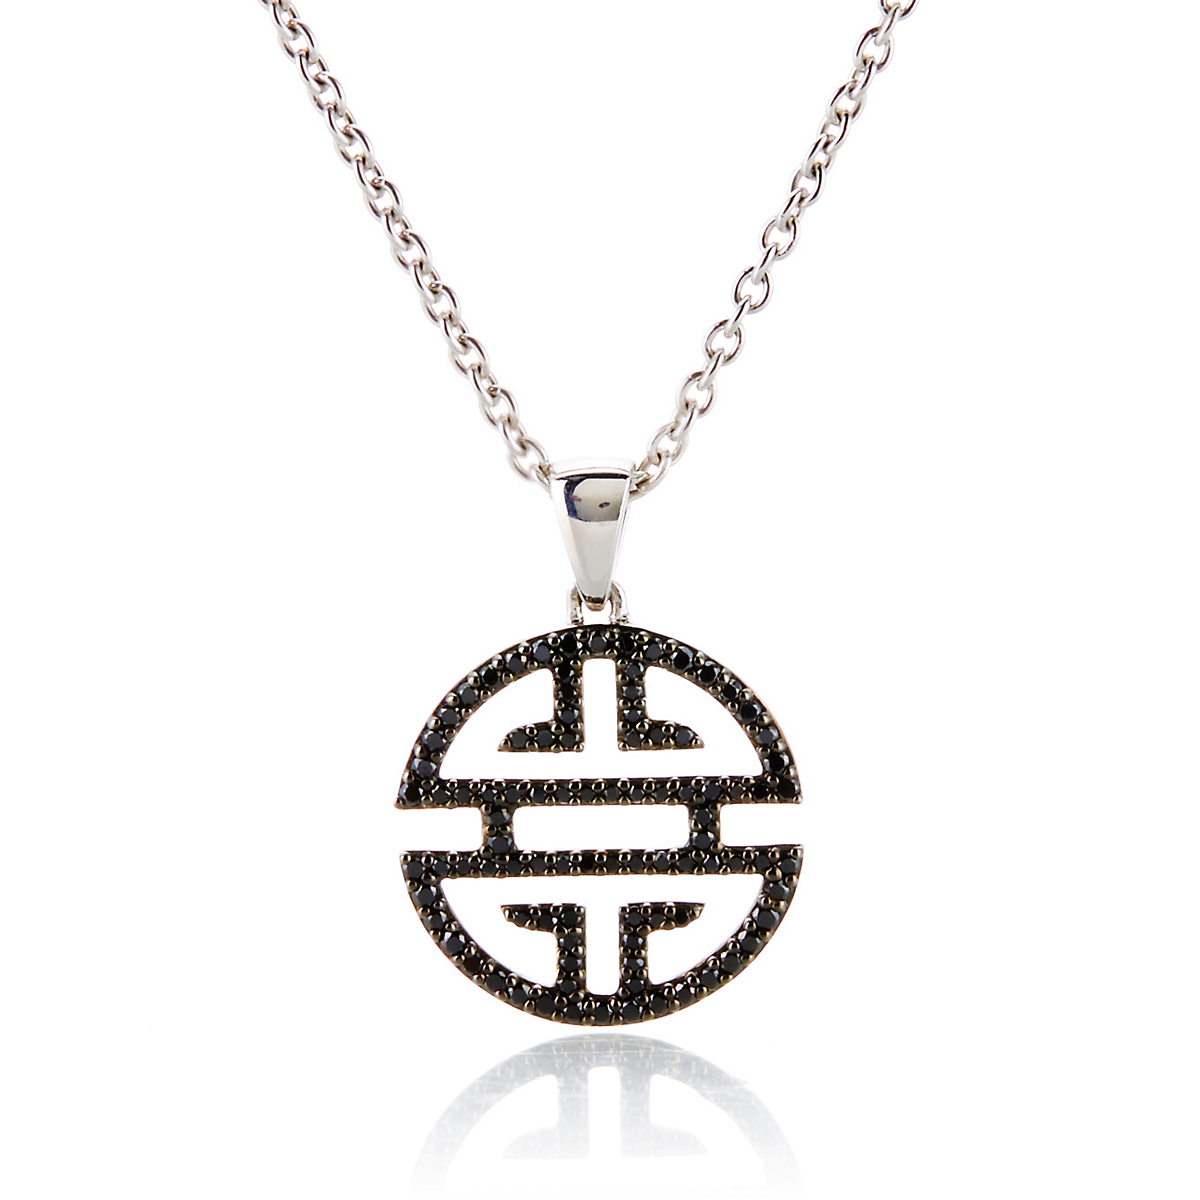 Gump's Shou Sterling Silver & Black Diamond Small Pendant Necklace